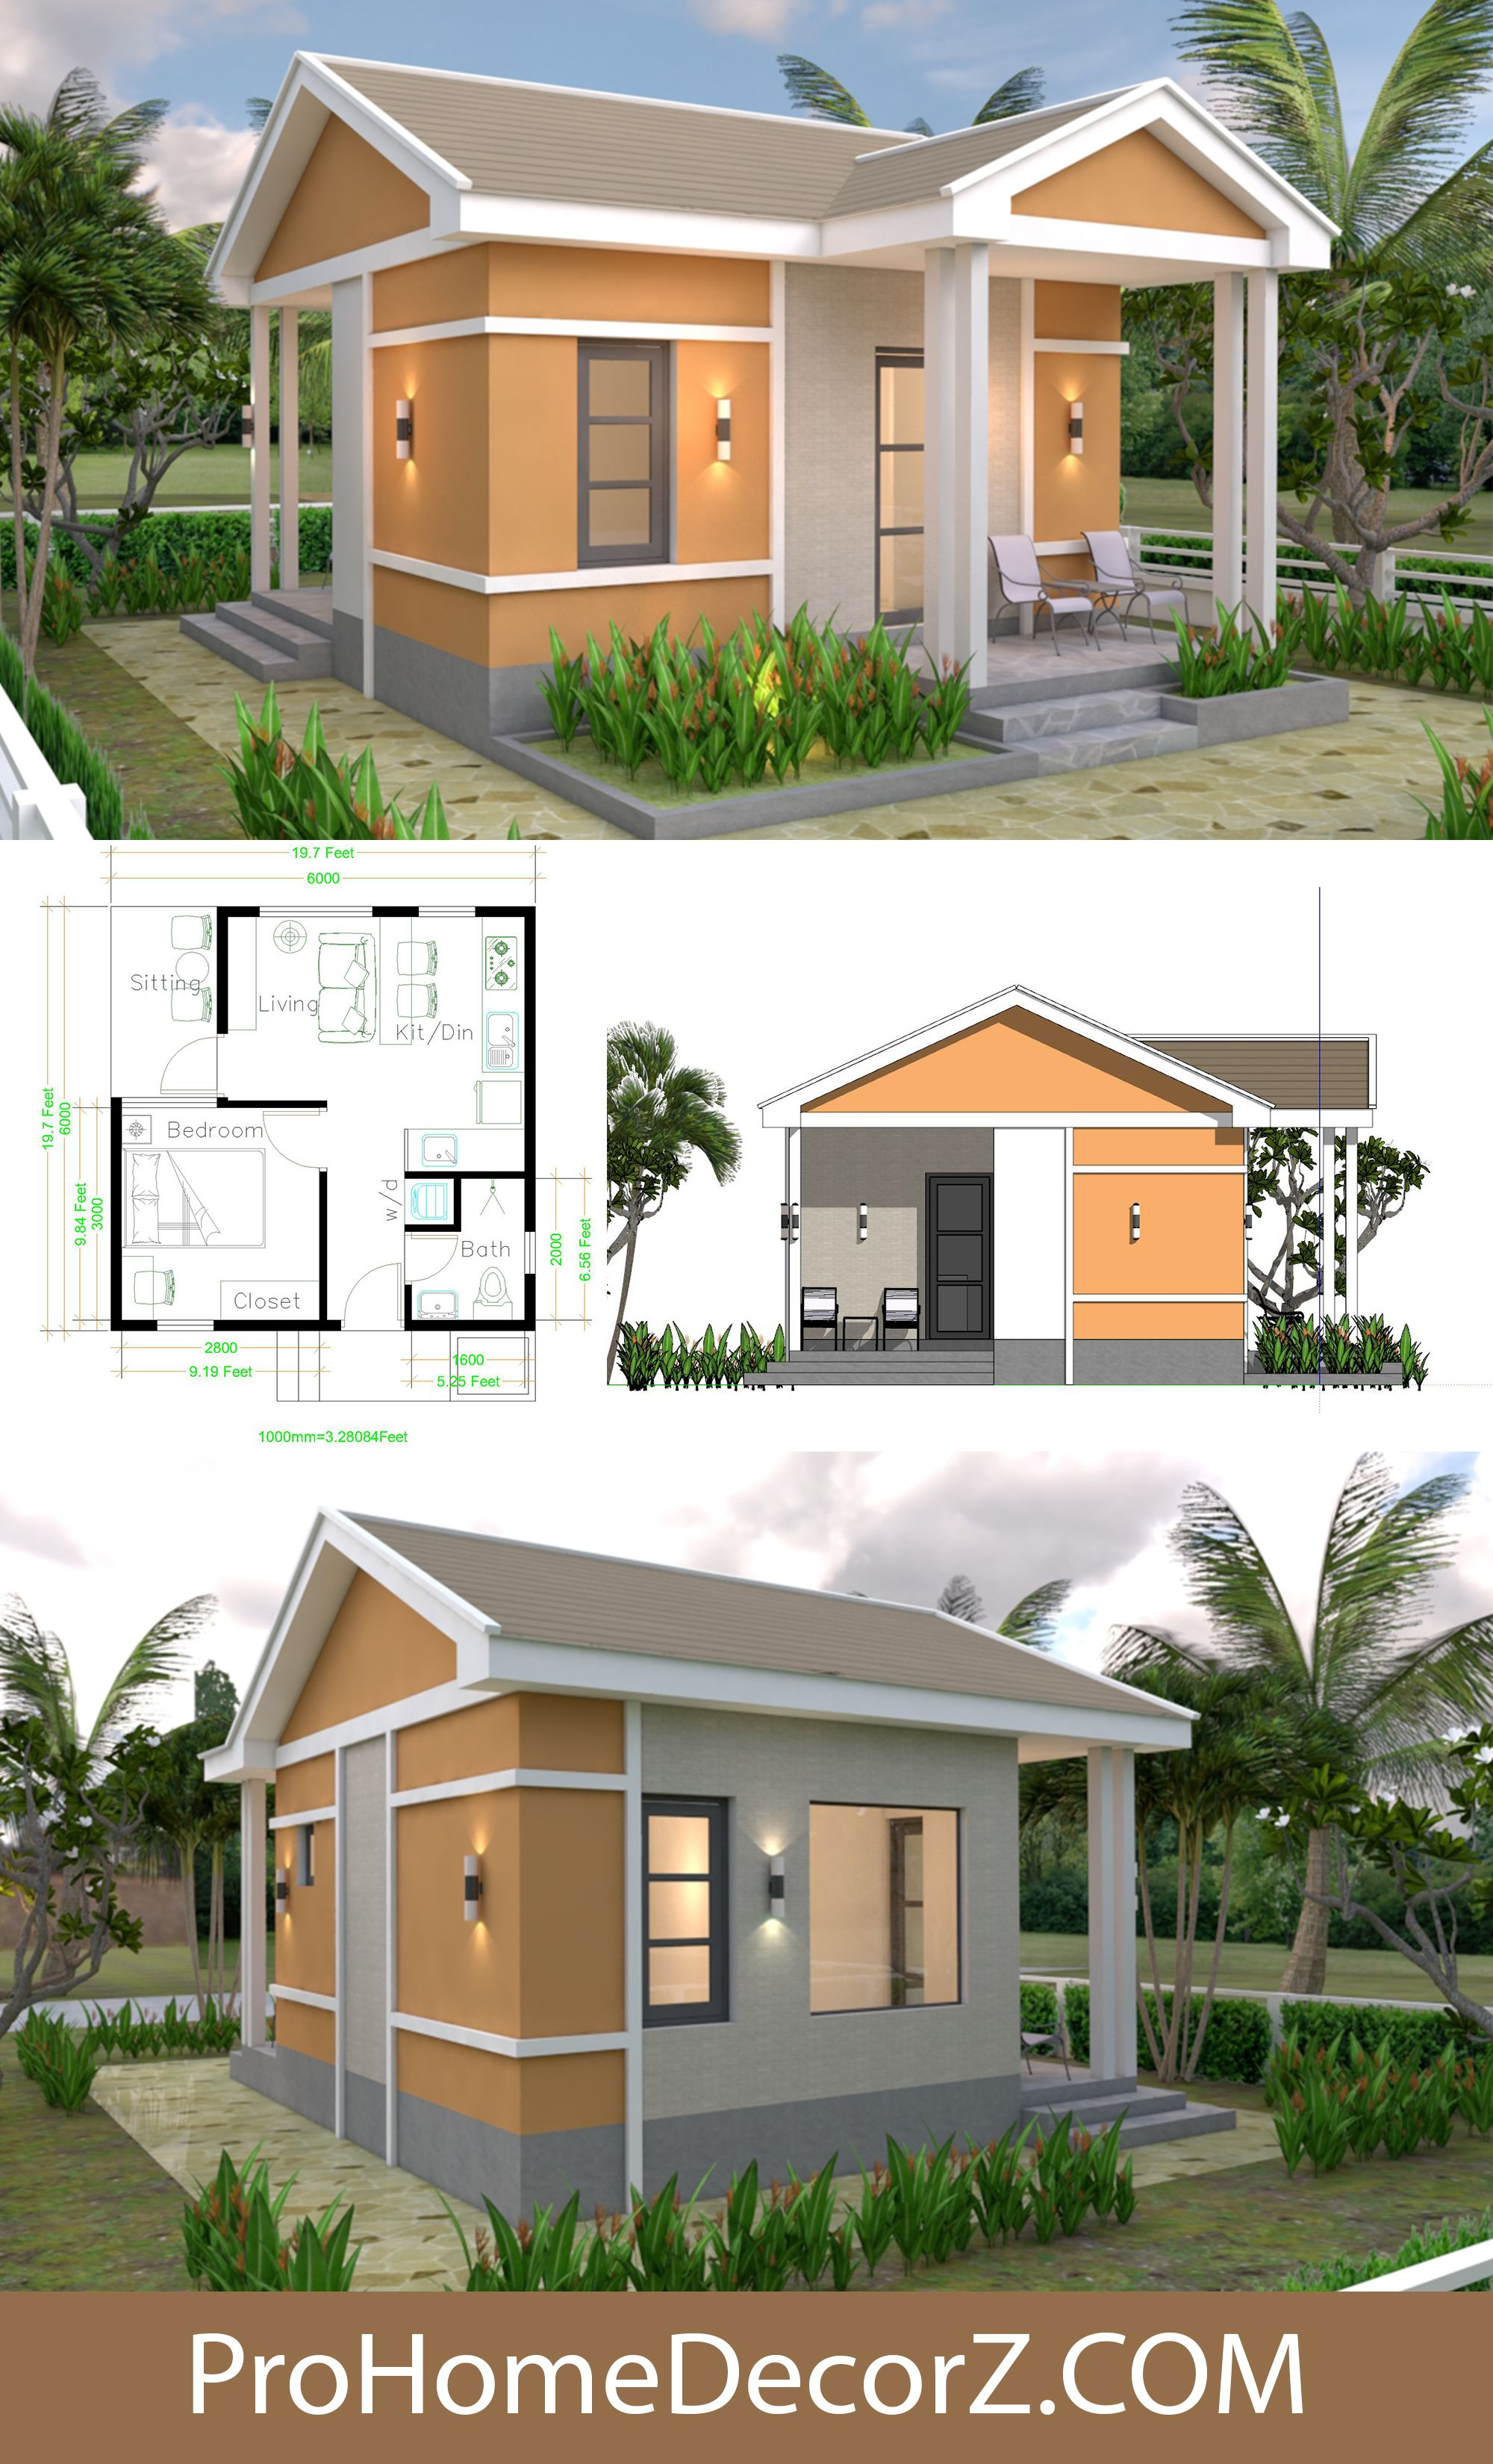 Small Mansion 6x7 5 With Gable Roof In 2020 Small Mansion Gable Roof House Gable Roof